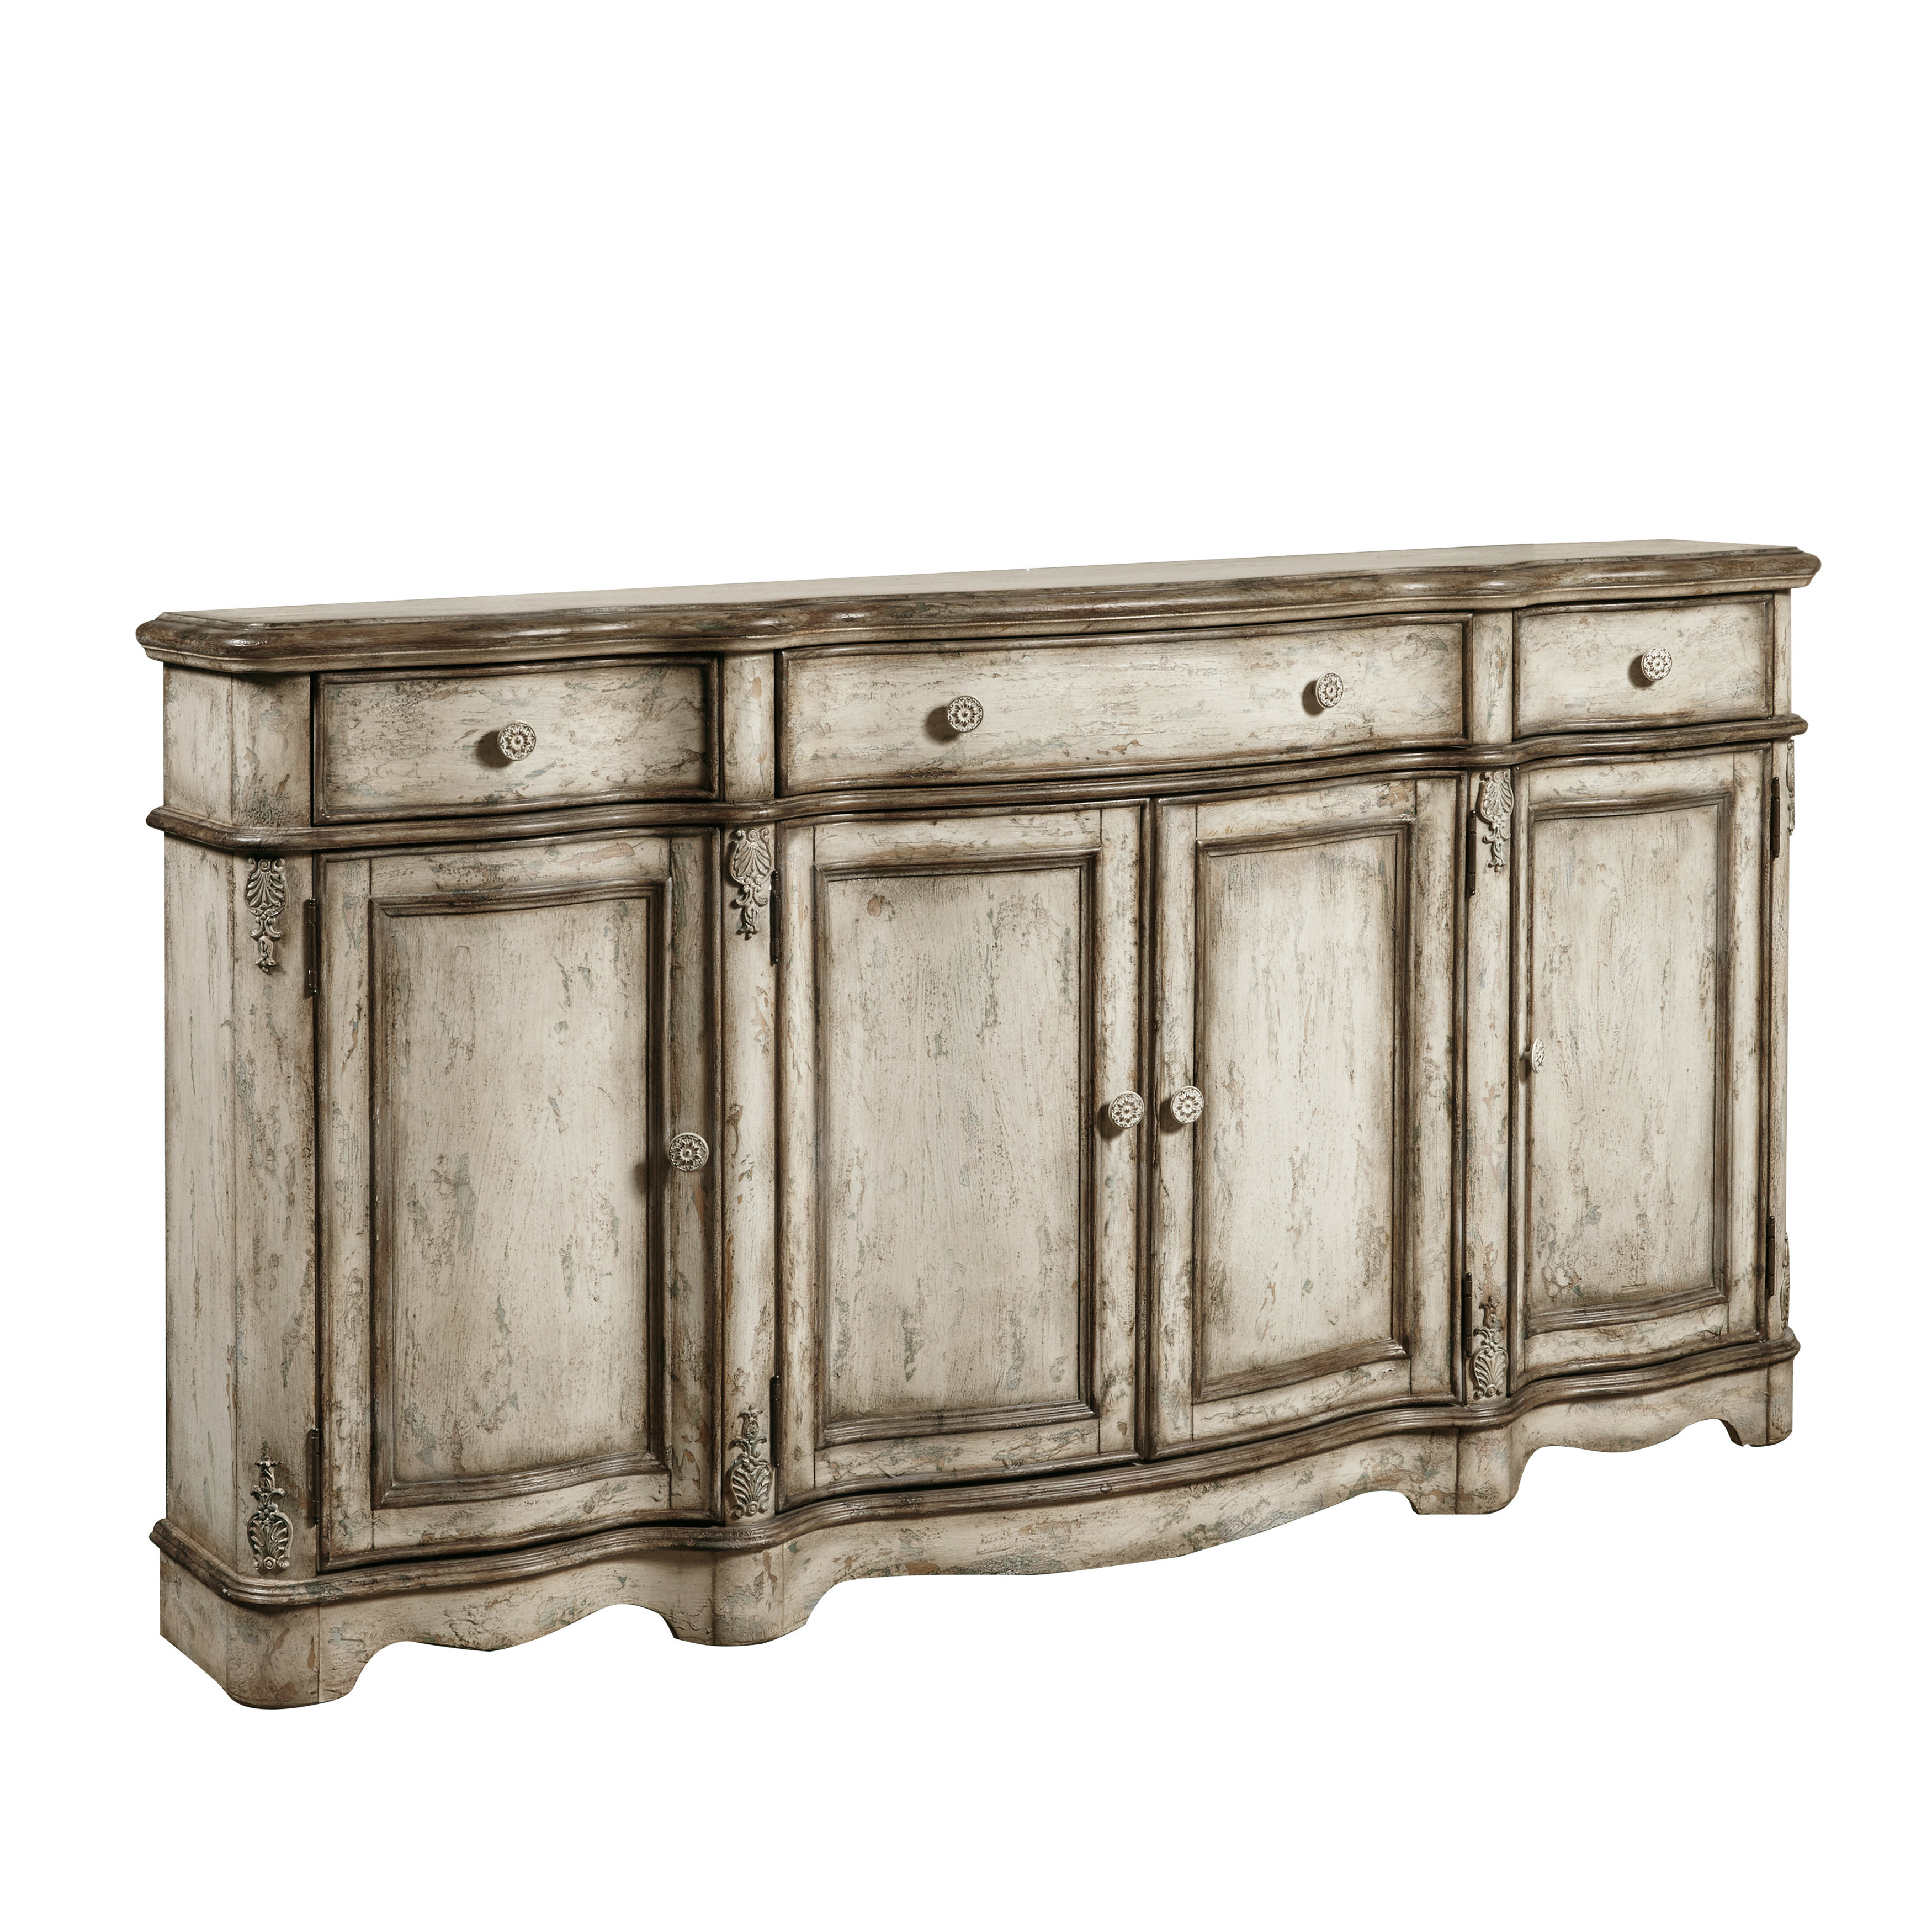 Farmhouse & Rustic Sideboards & Buffets | Birch Lane Inside Rosson Sideboards (View 7 of 20)